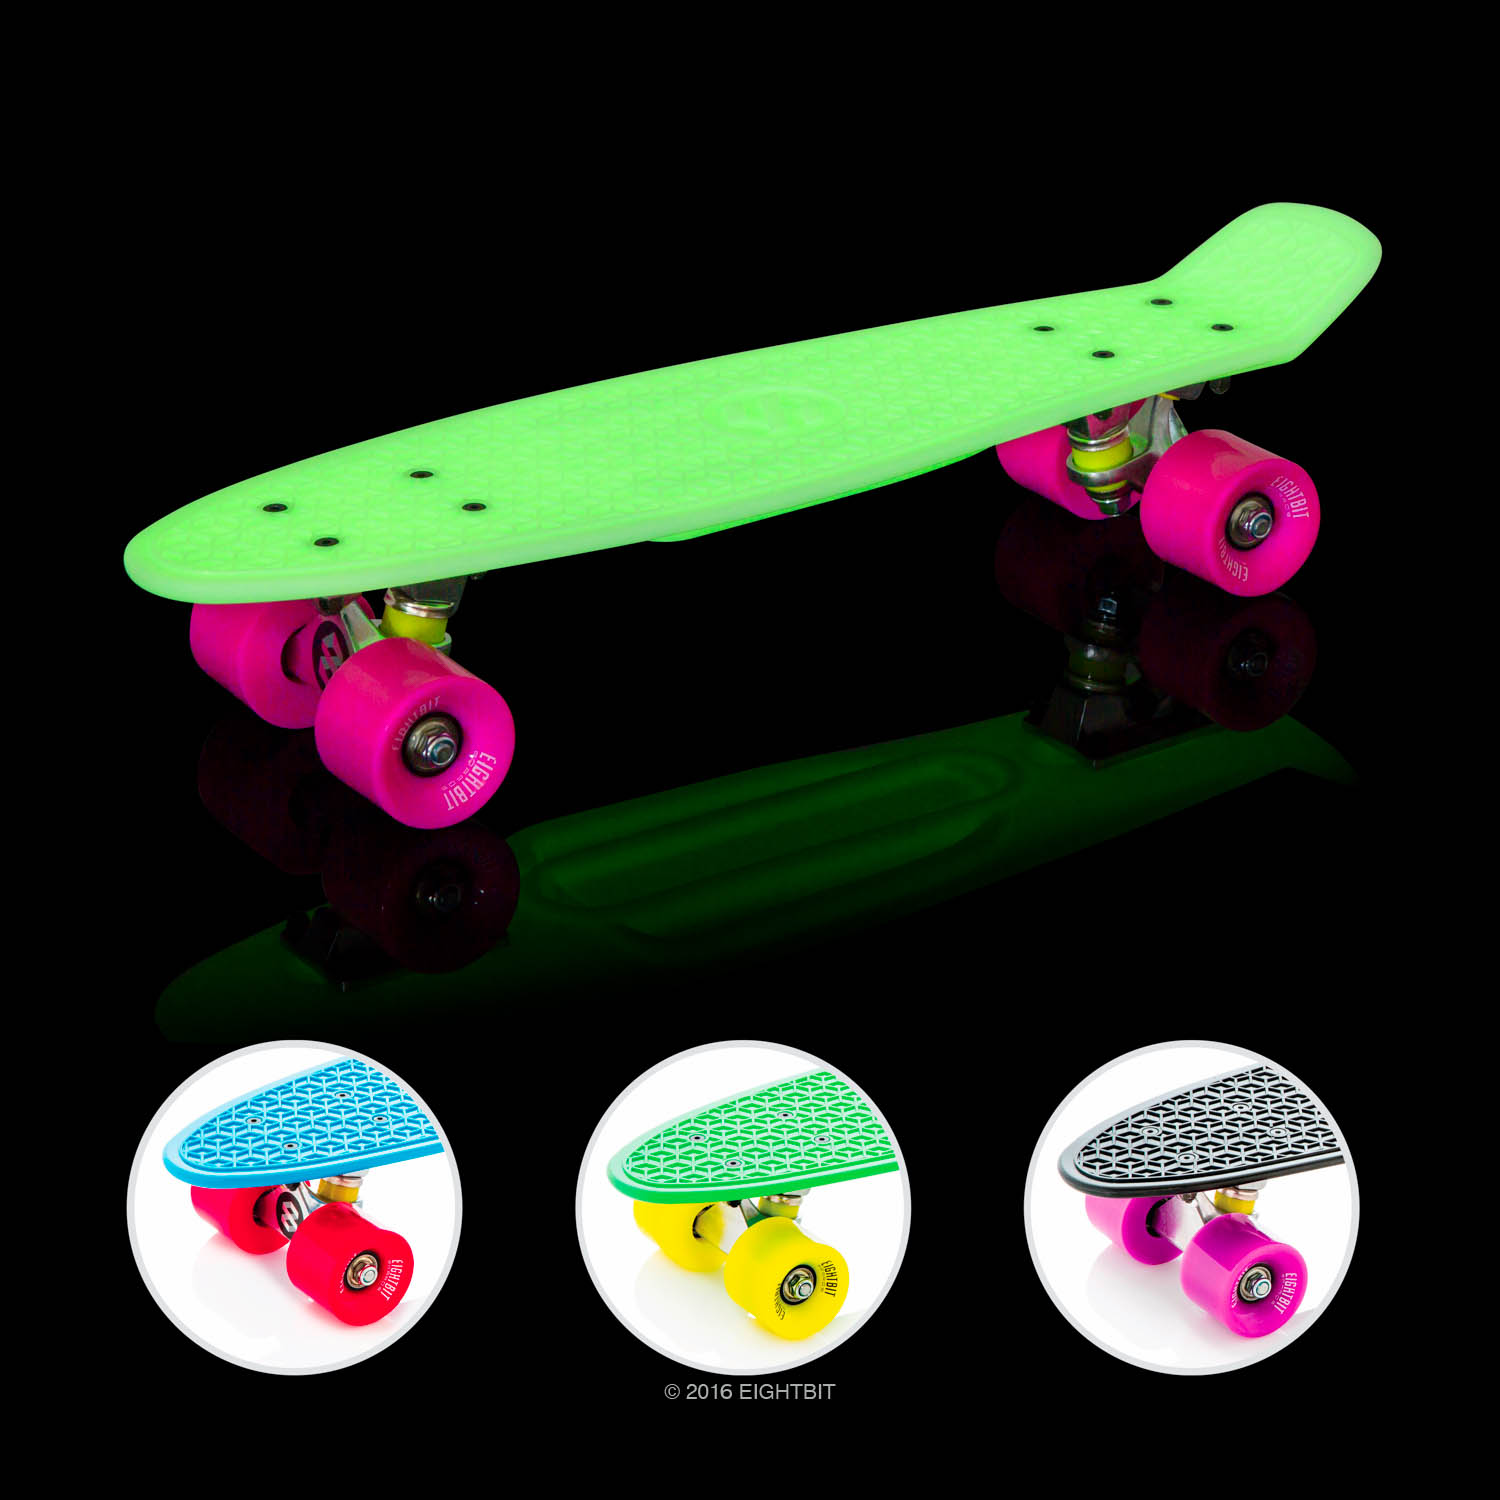 "Eightbit 22"" Complete Skate Board - Retro Skateboard Glow-in-the-Dark - Kryptonite/ Punch"